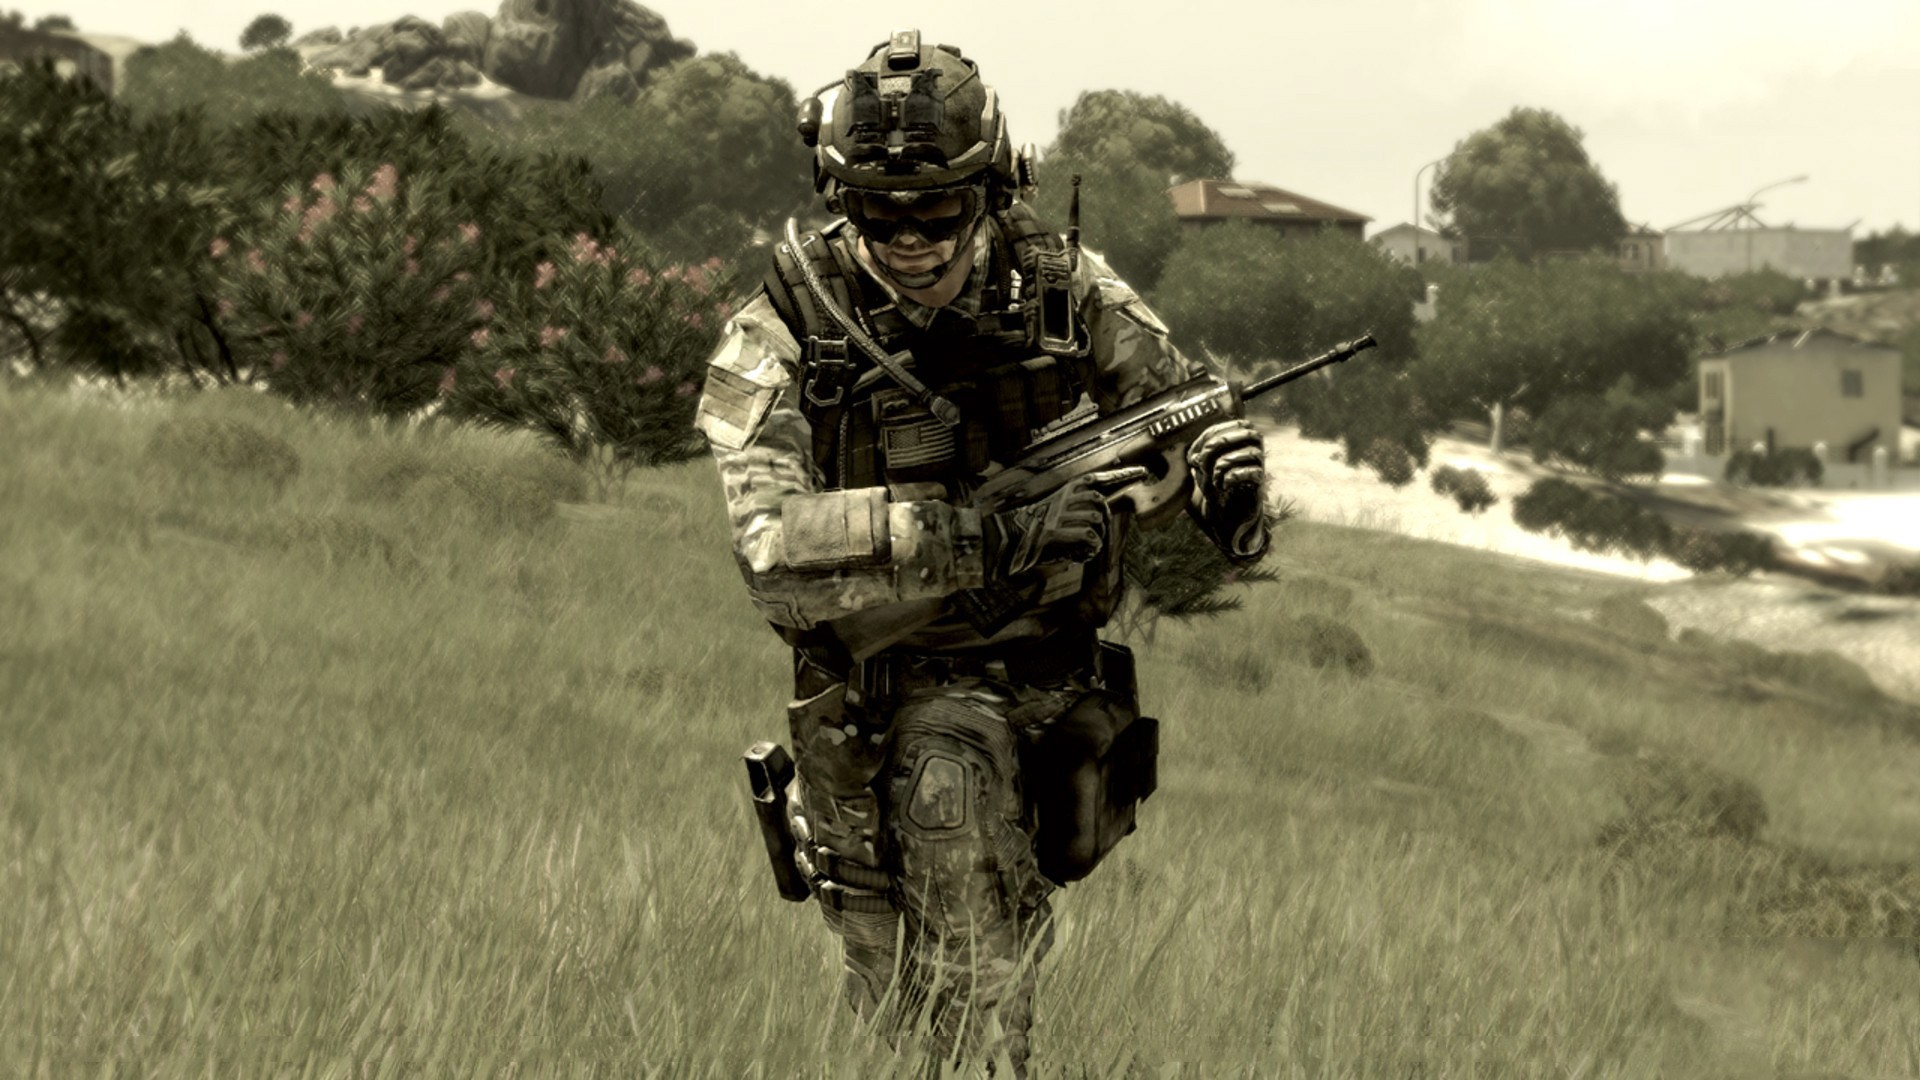 42 cool army wallpapers in hd for free download - Military wallpaper army ...